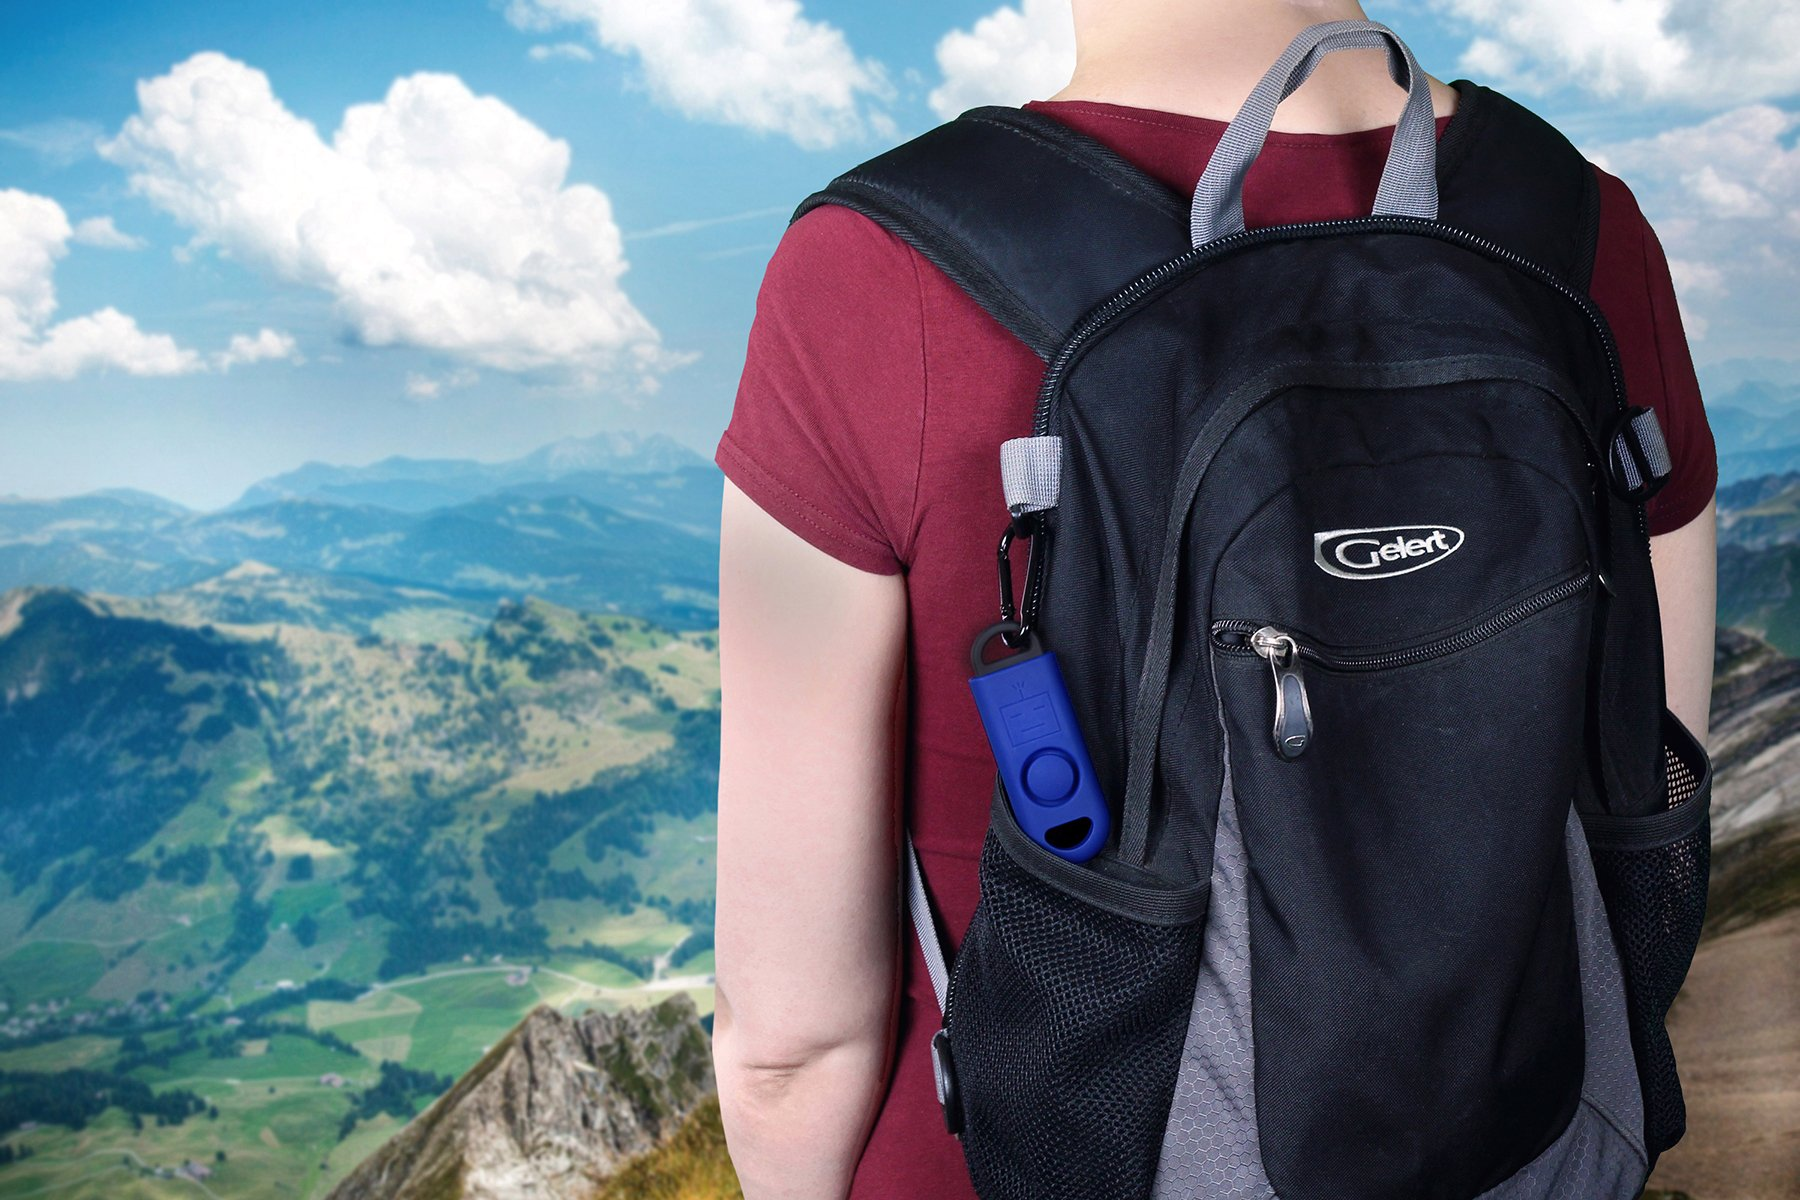 B A S U eAlarm+ with Tripwire Hook, Emergency Personal Alarm, Battery Included, Carabiner Included, Navy Blue by B A S U (Image #7)